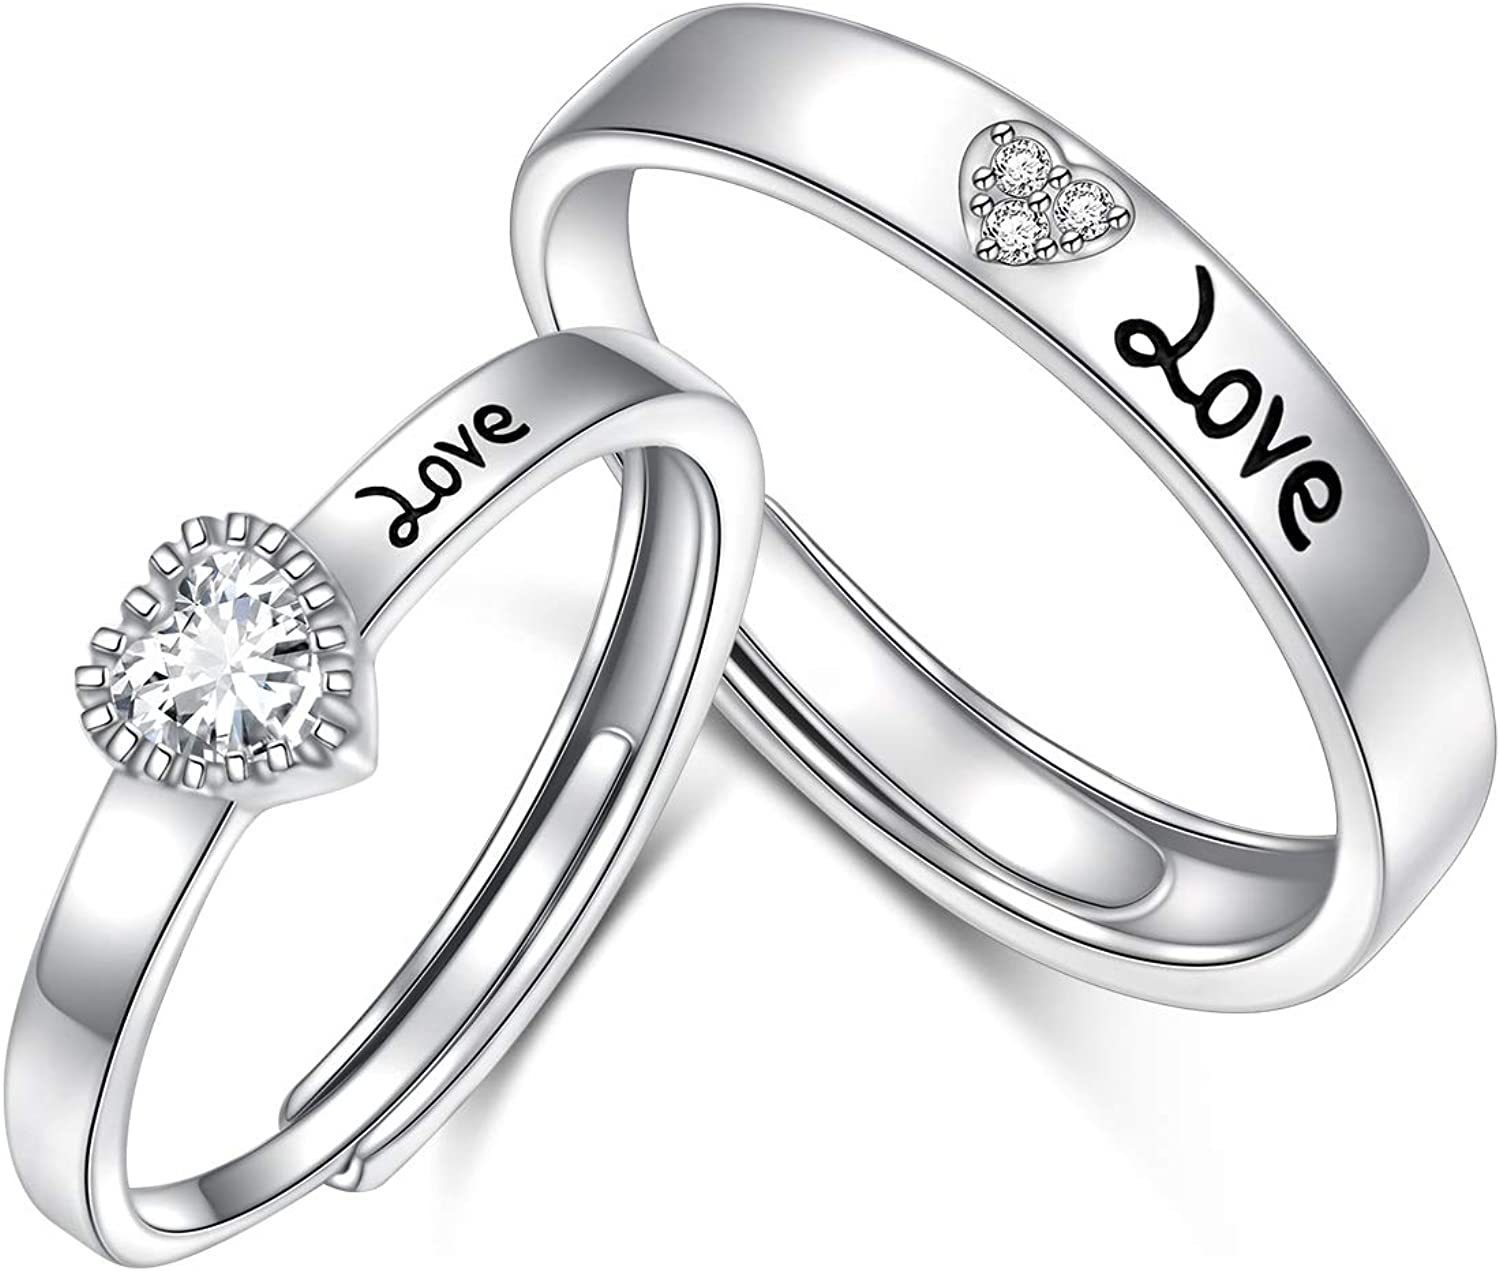 2PCS 925 Sterling Silver Adjustable Engage Promise San Antonio Mall Couples Rings Dallas Mall